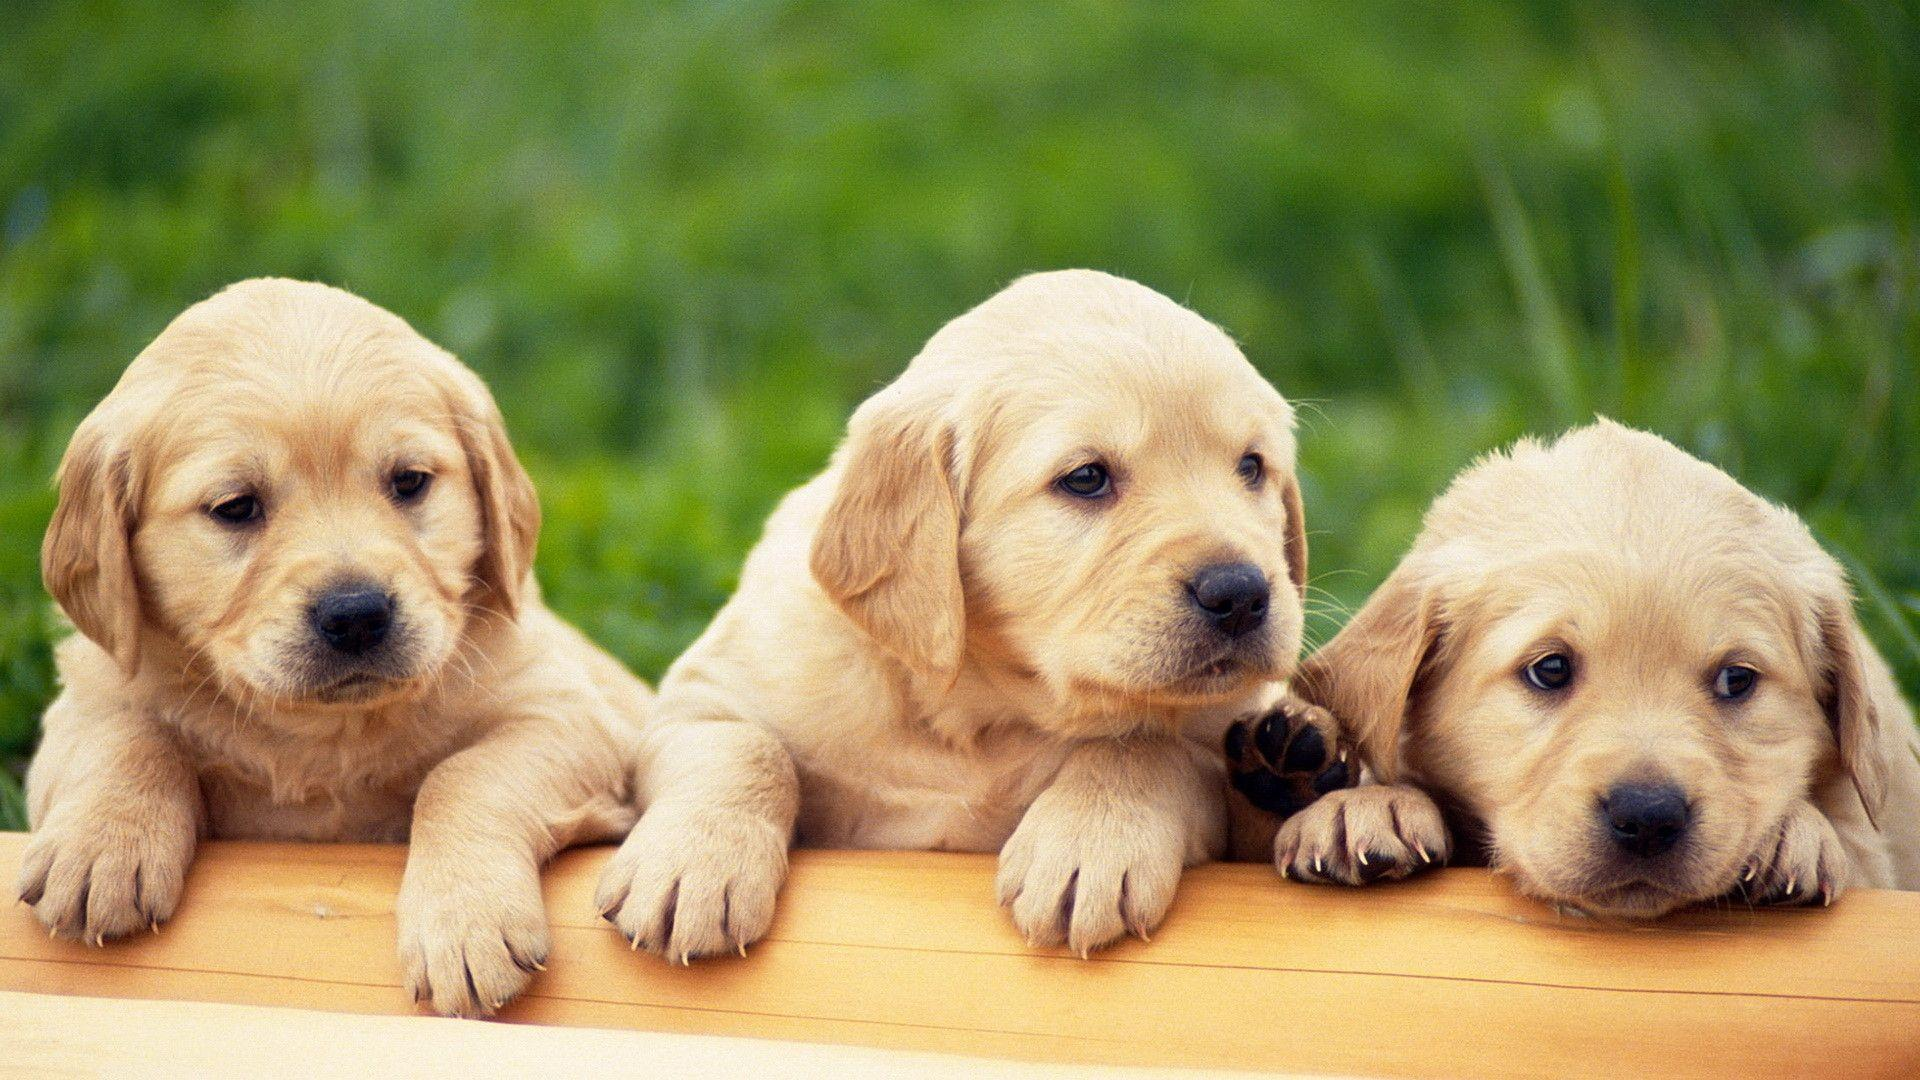 Puppies HD Wallpapers - HD Wallpapers Inn